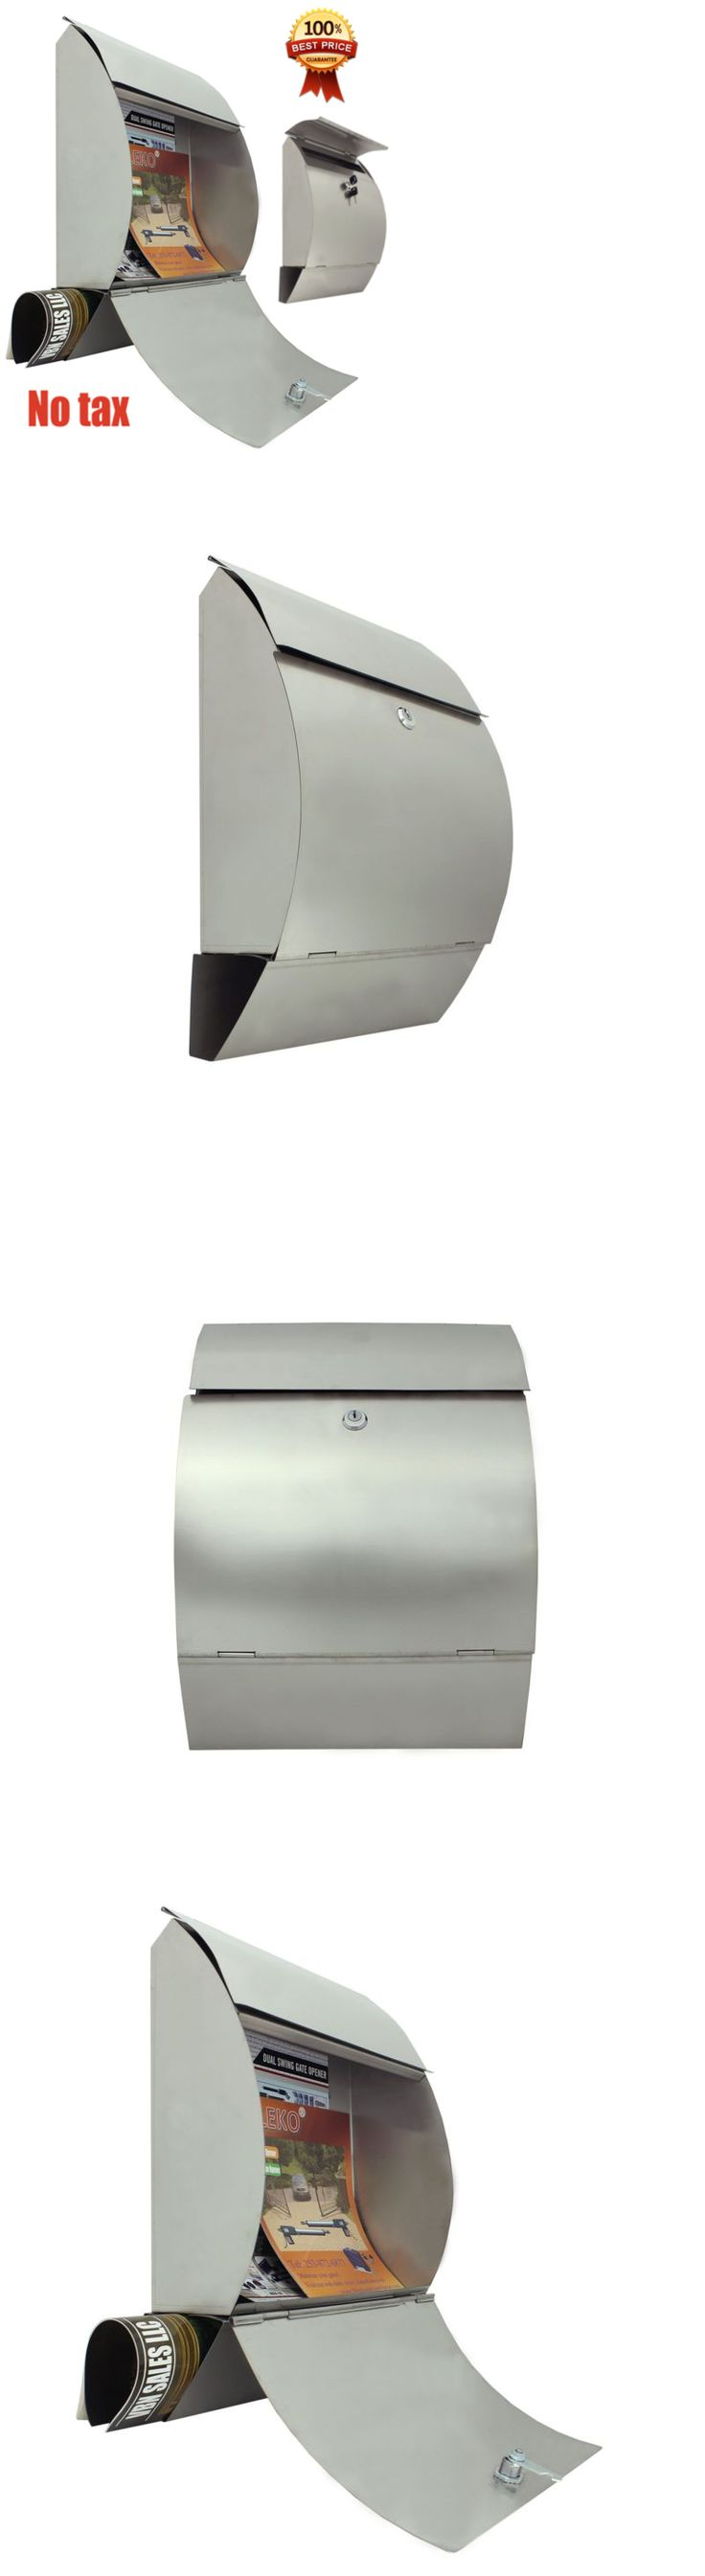 Mailbox stainless steel locking mail box letterbox postal box modern - Mailboxes And Slots 20599 Lockable Mailbox Wall Mount Stainless Steel Retrieval Door Newspaper And 2